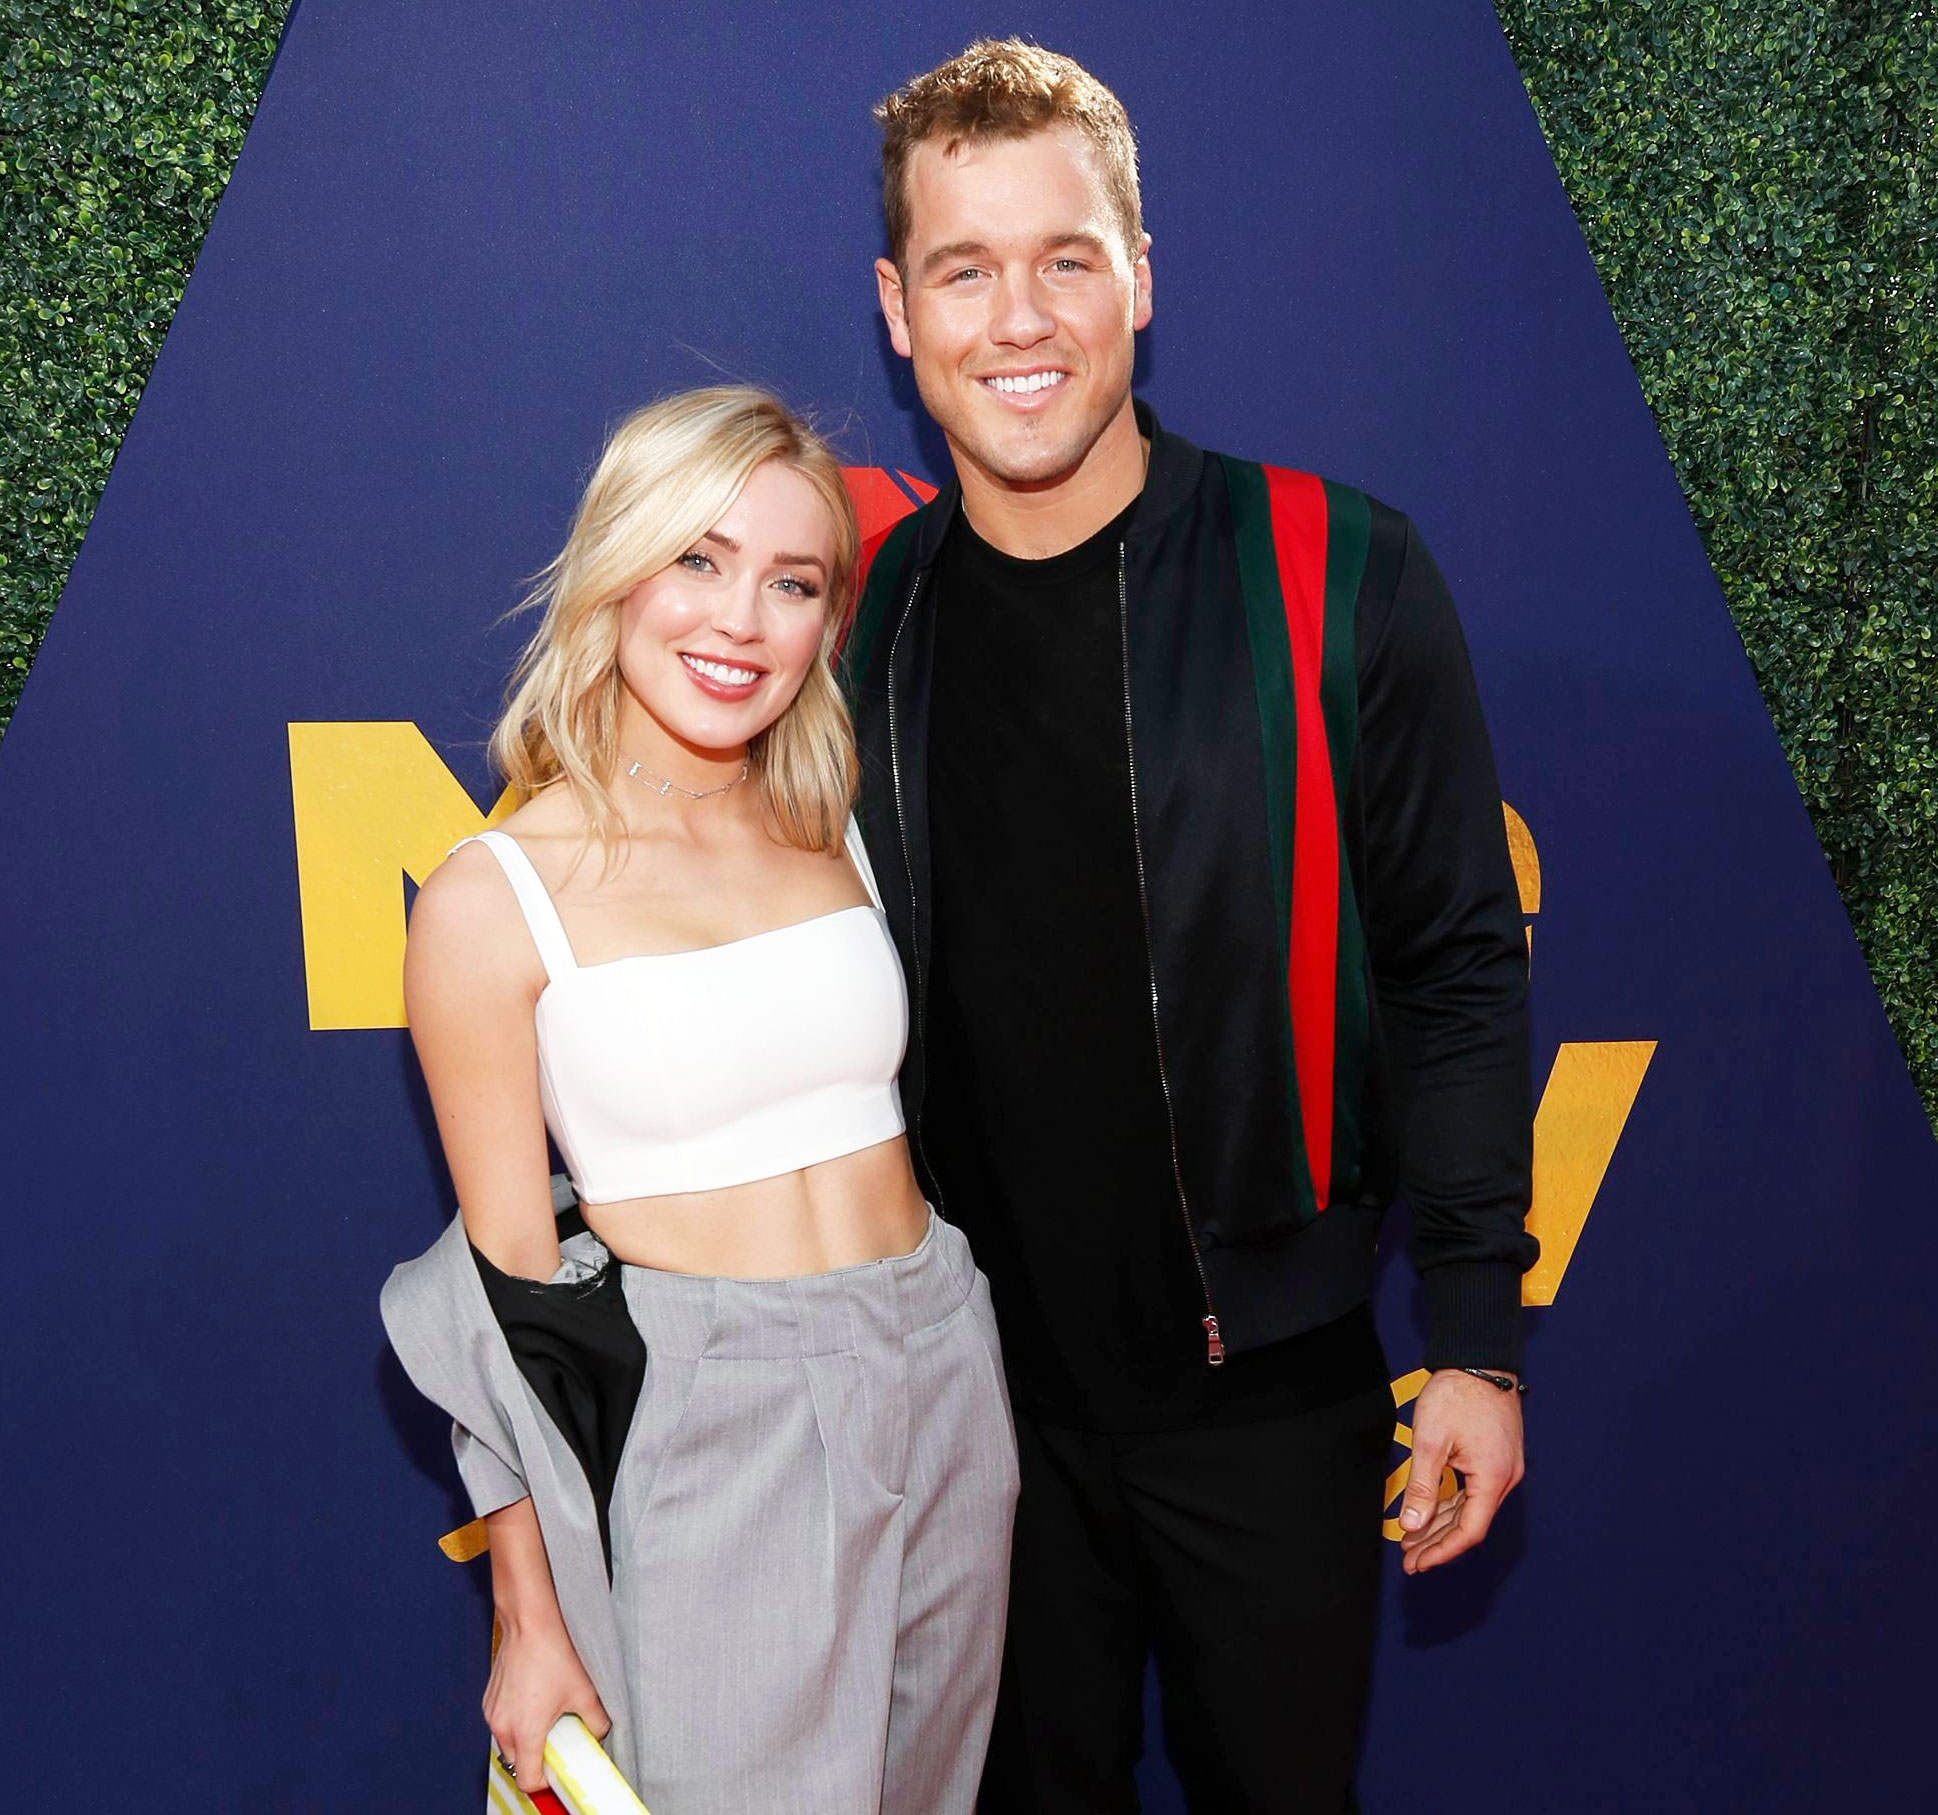 Colton Underwood Talks About Why Cassie Randolph and He Wont Move in Together Until They Are Married